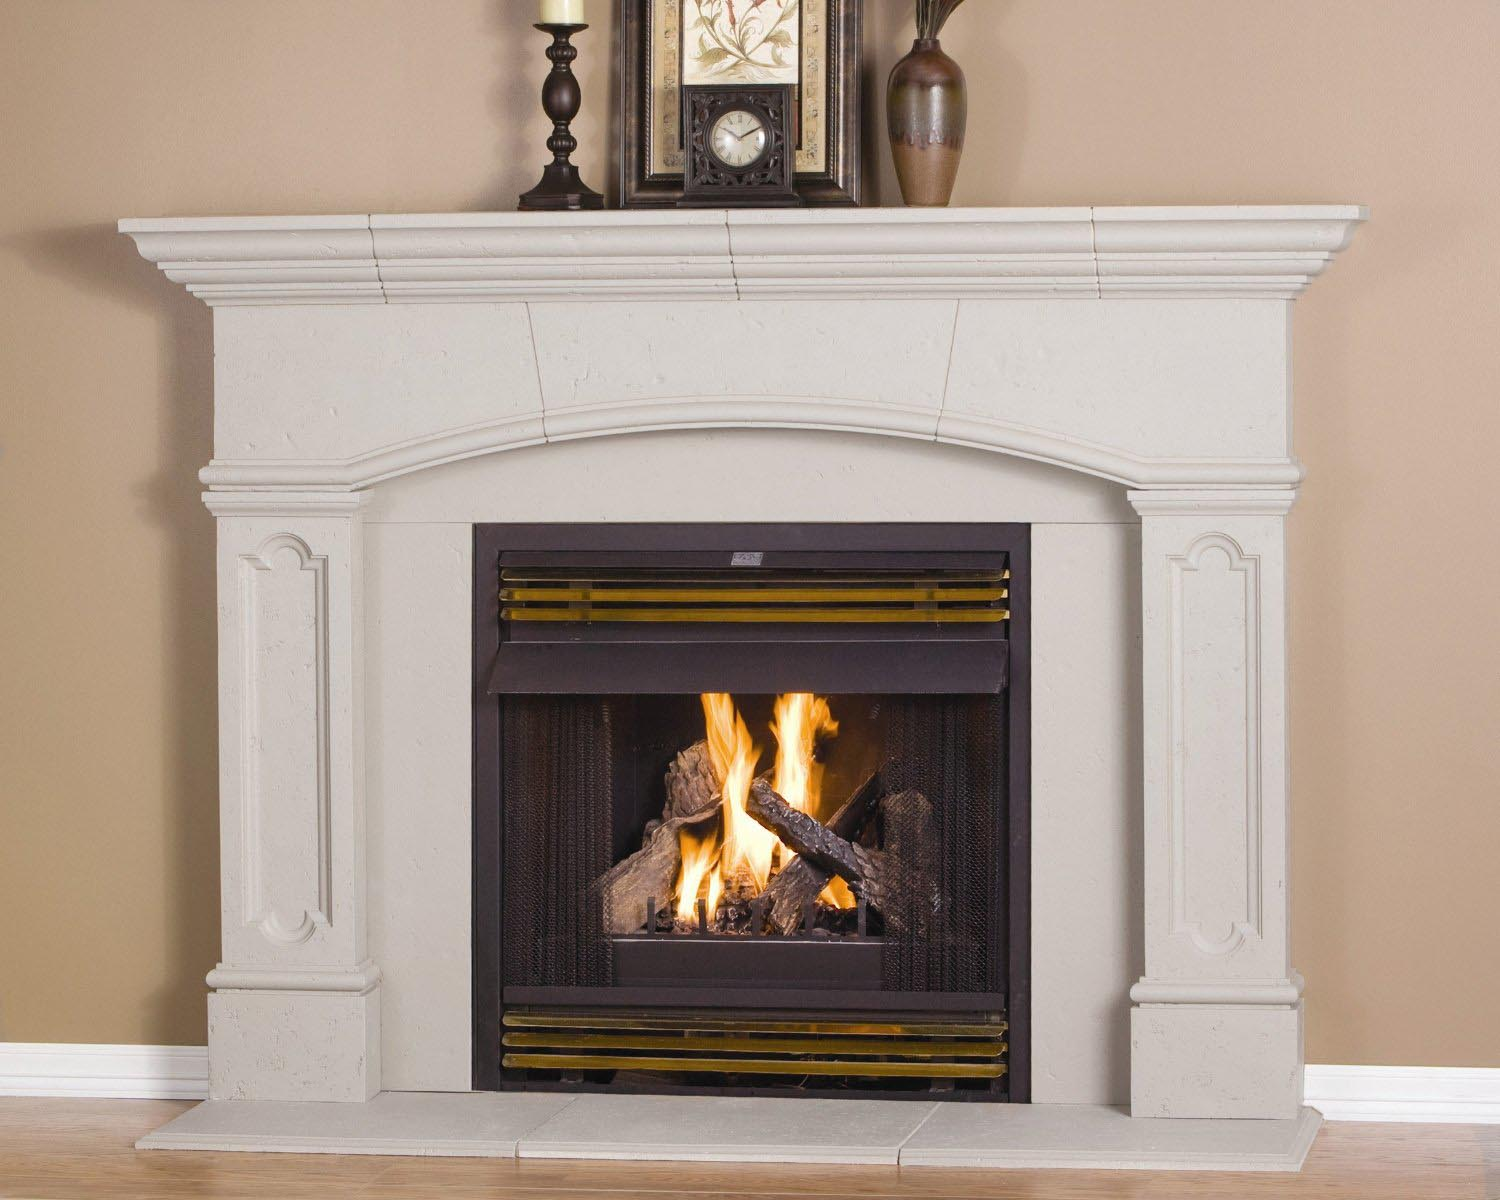 Fireplace mantel surrounds ideas fireplace designs Fireplace plans